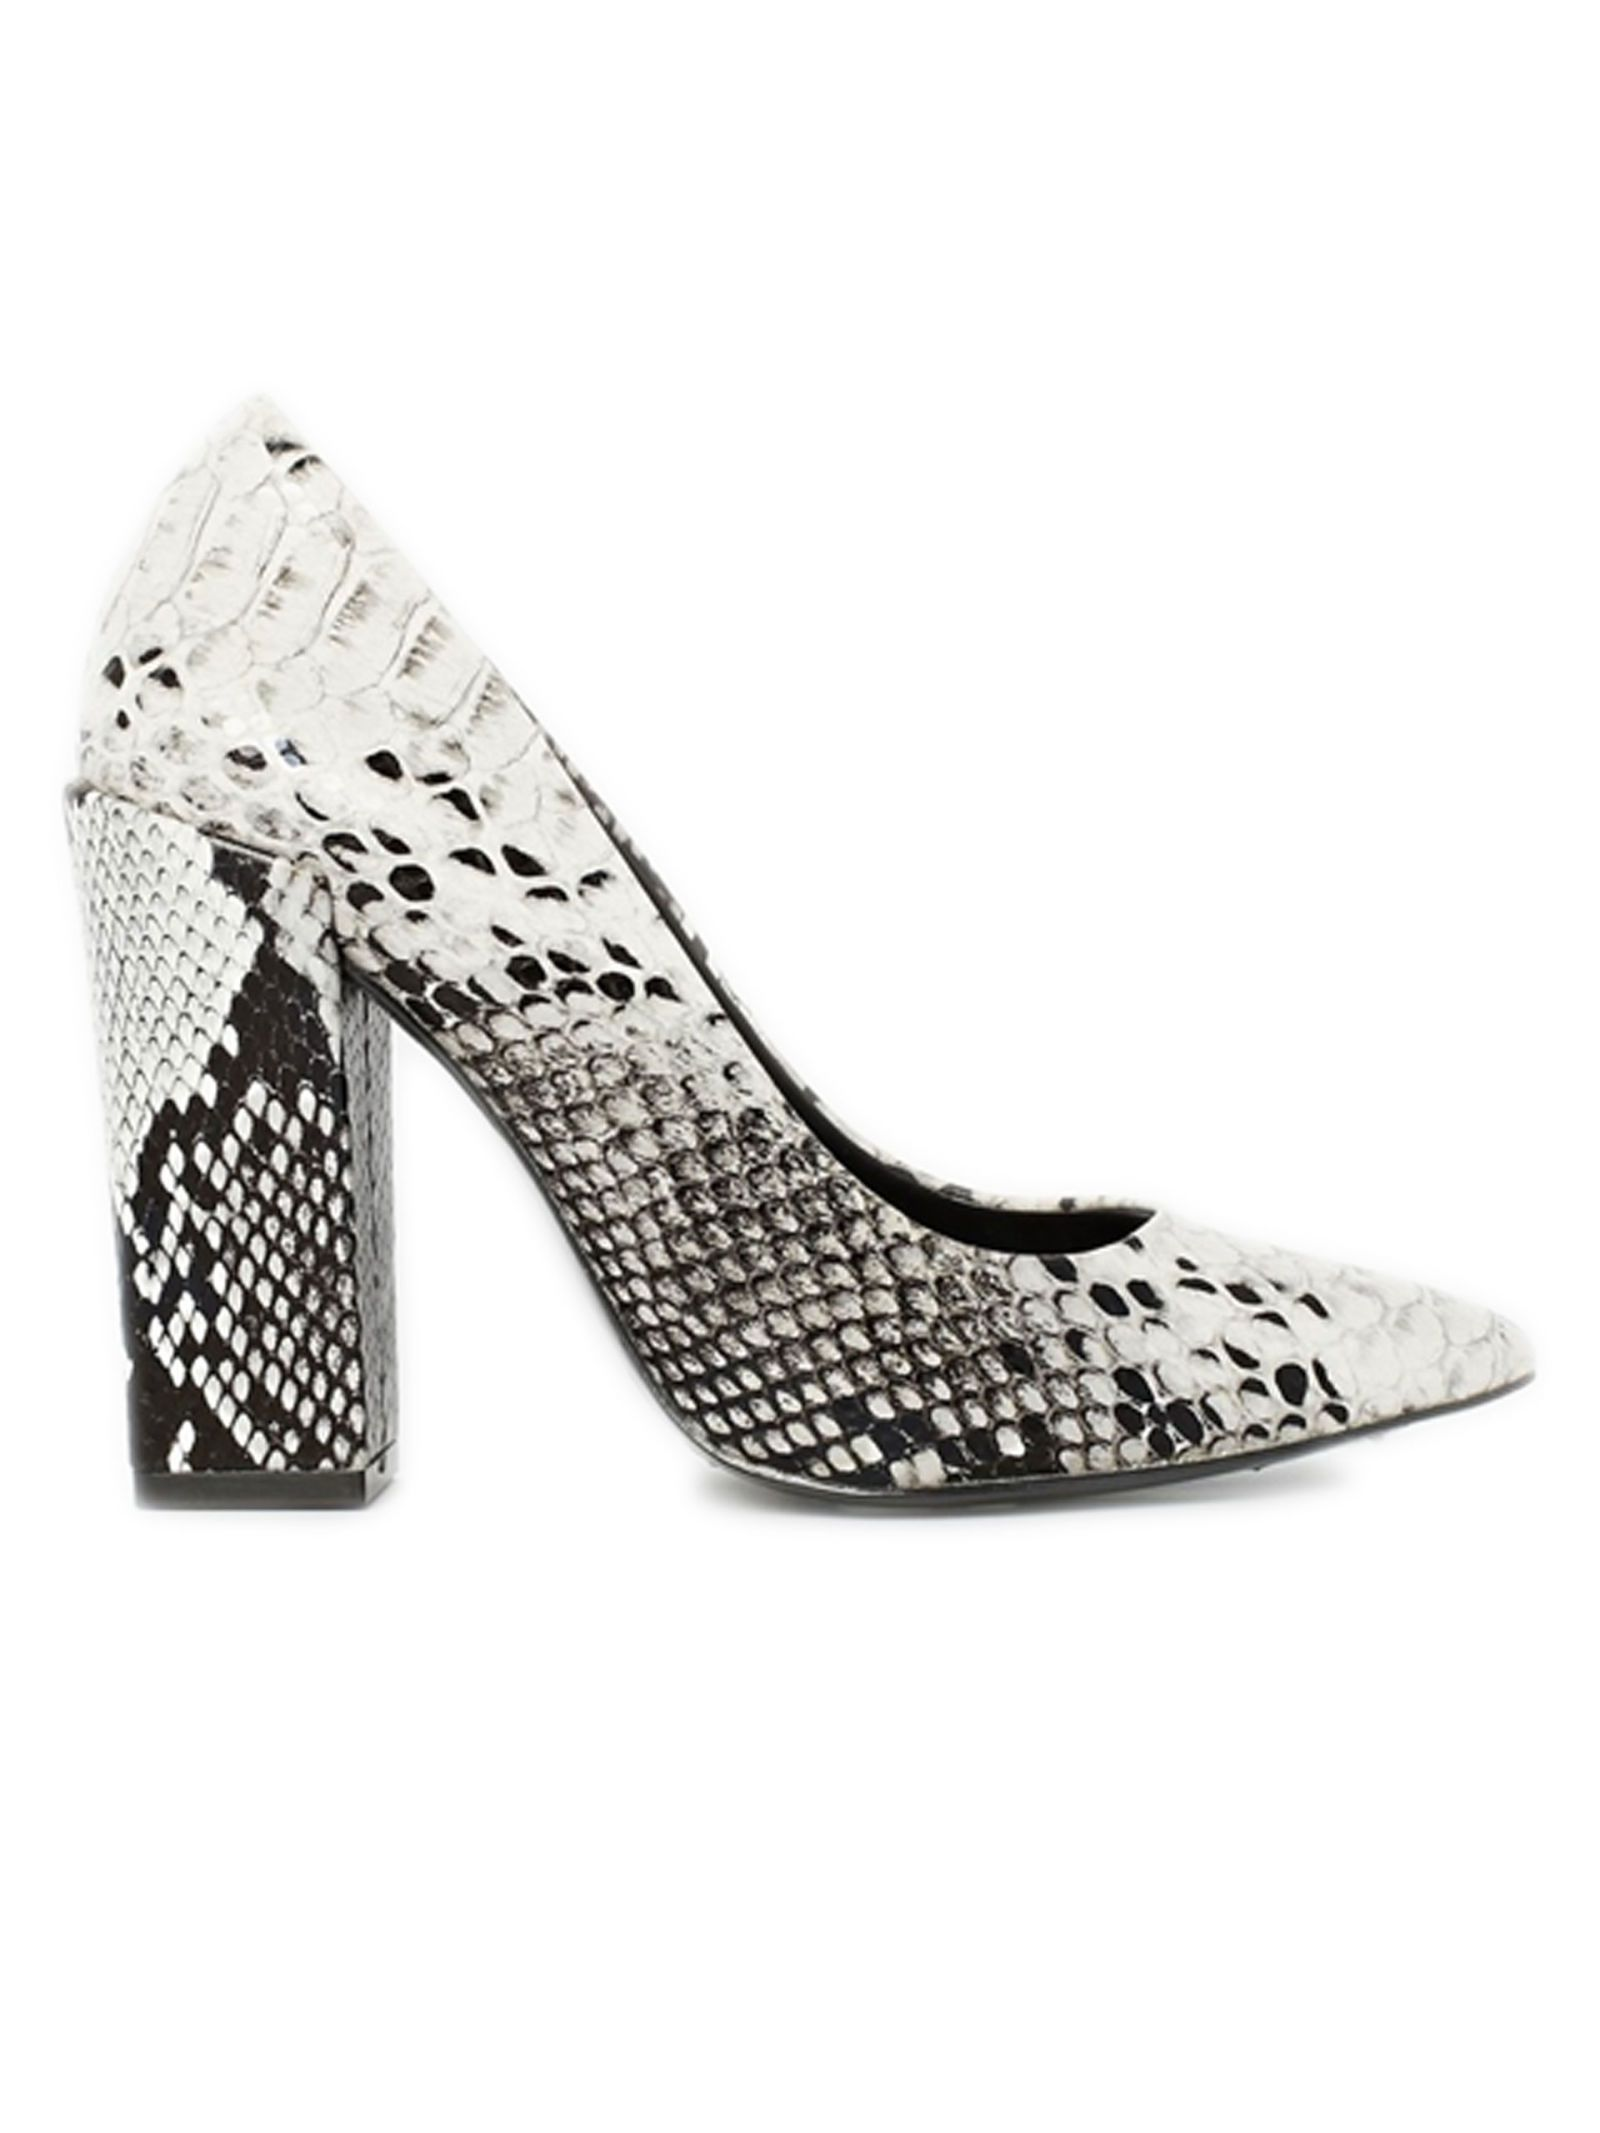 8ca8202c93d Fall Shoes 2014 - Shoe Trends for 2014